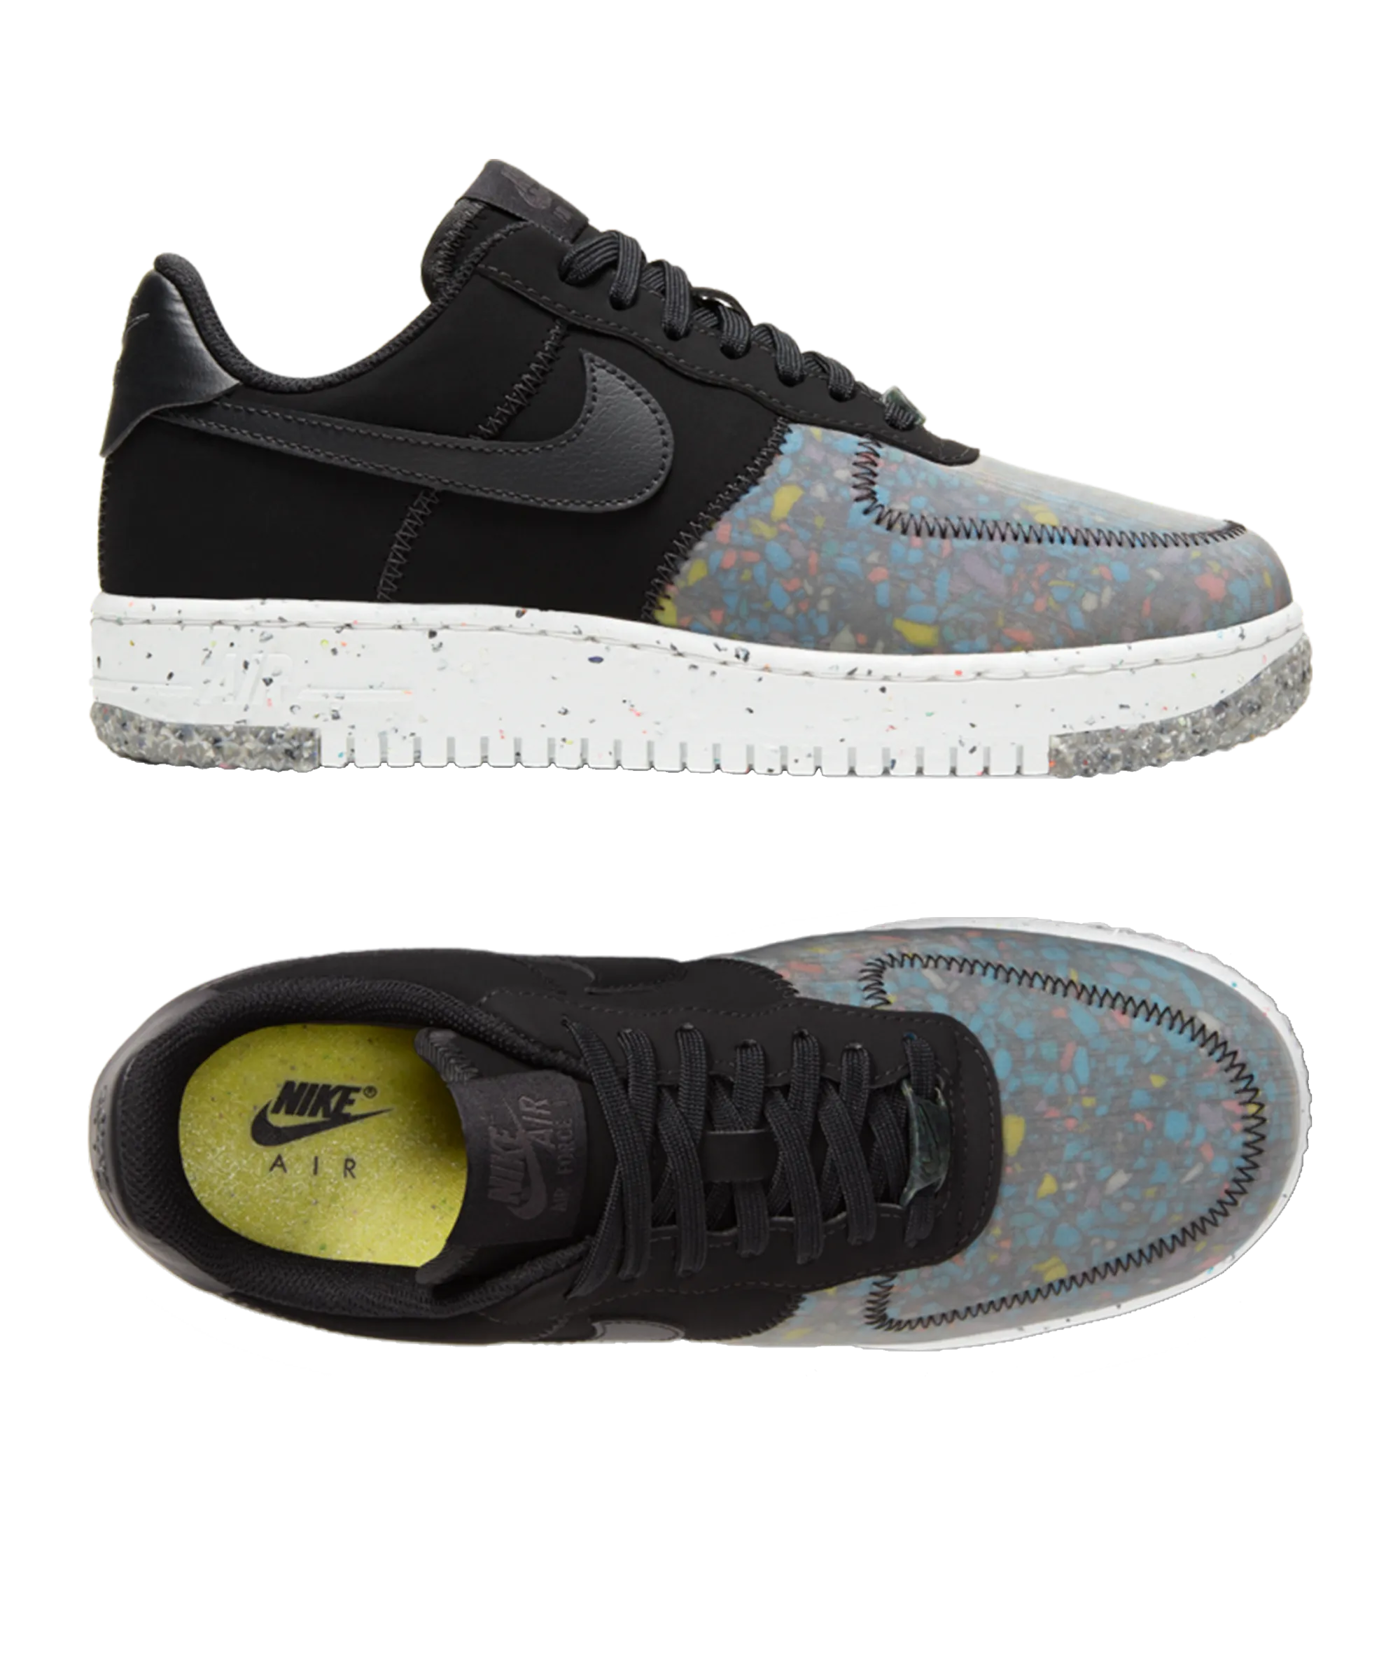 air force 1 donna col collo